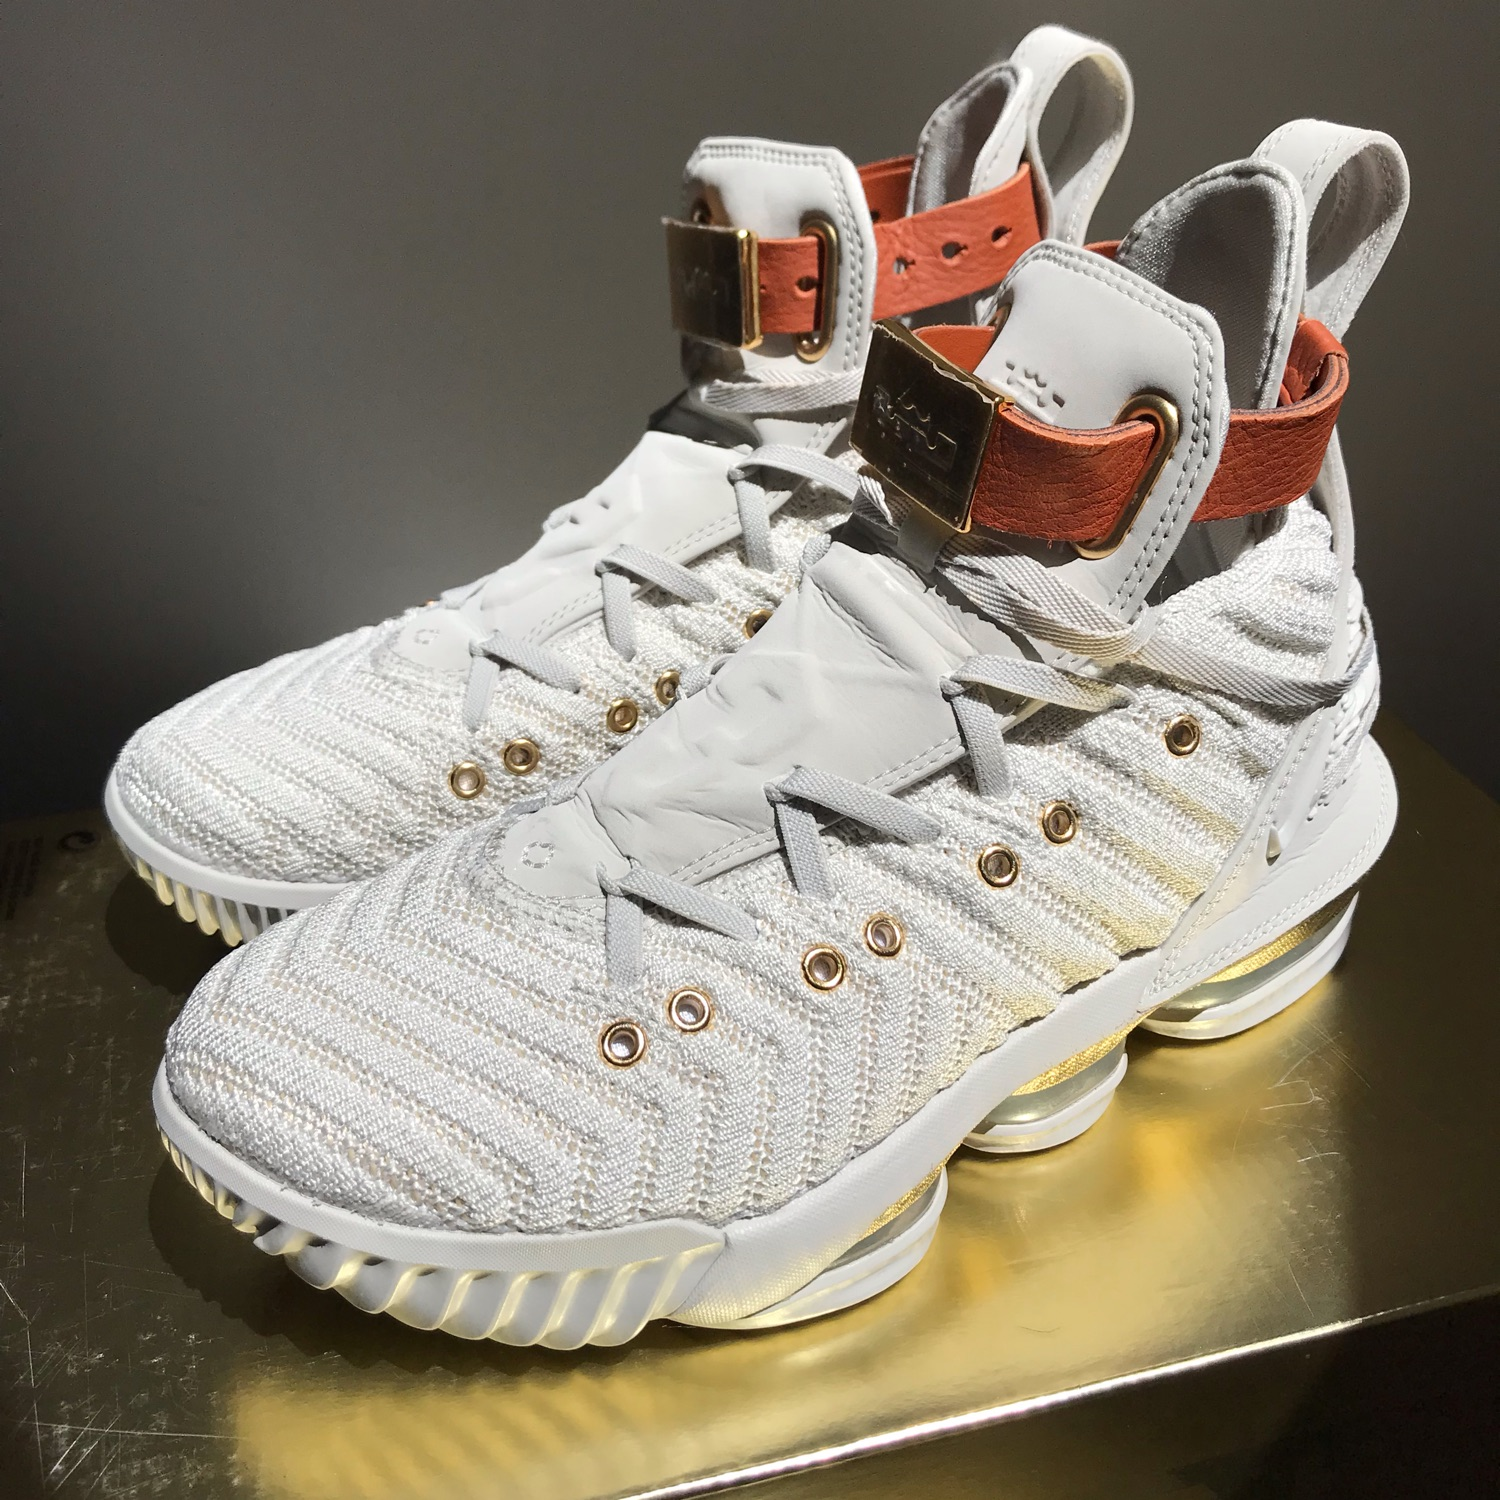 factory price 08a75 a417b Nike Lebron 16 Hfr Harlem Fashion Row Wmns